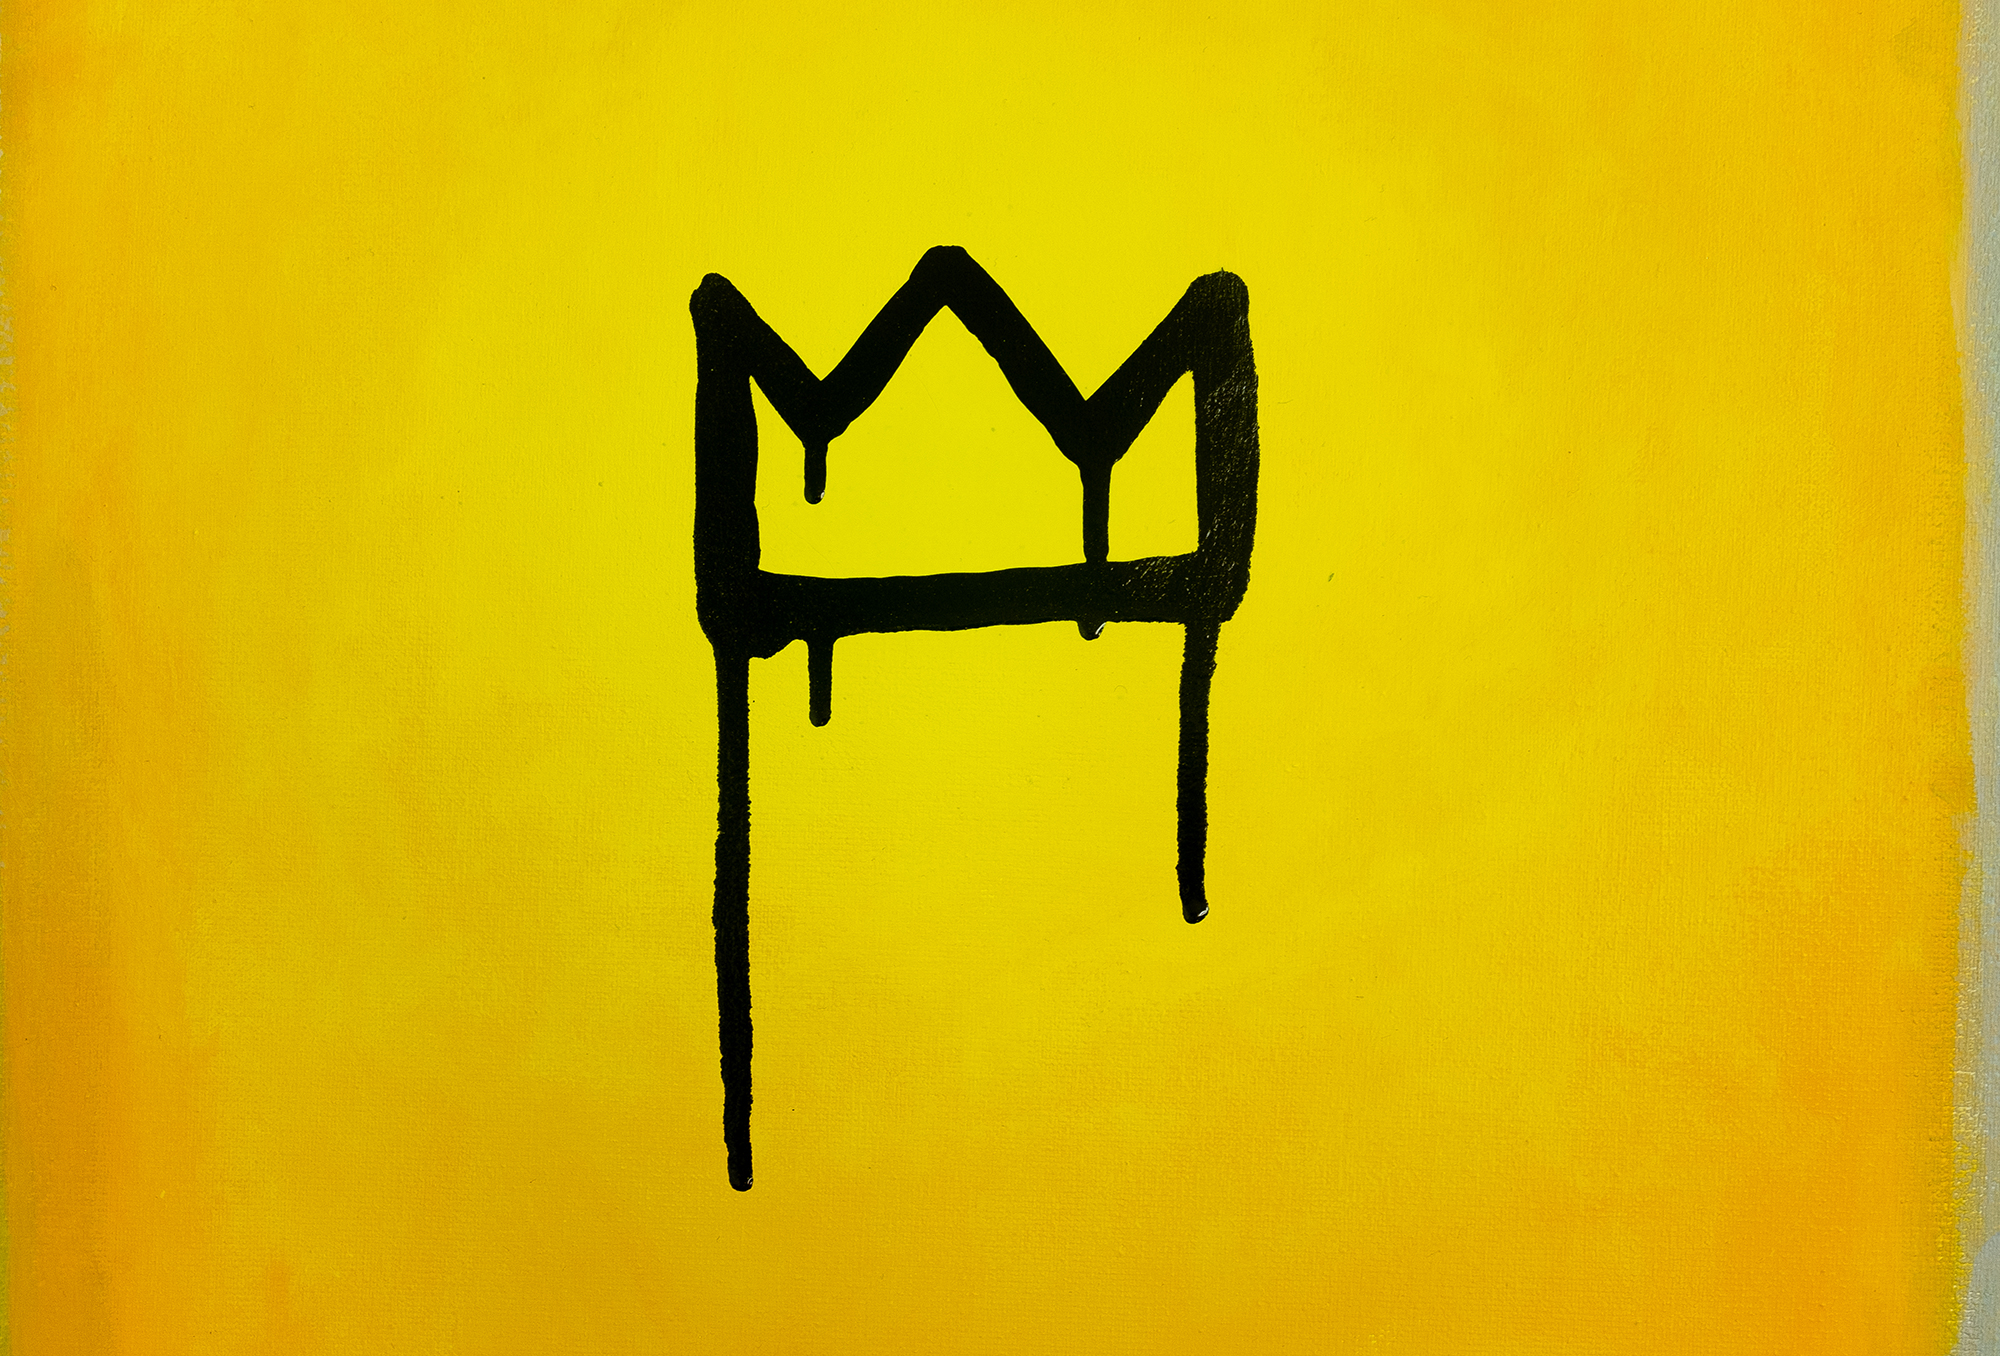 Just believe me – yellow artwork with black crown